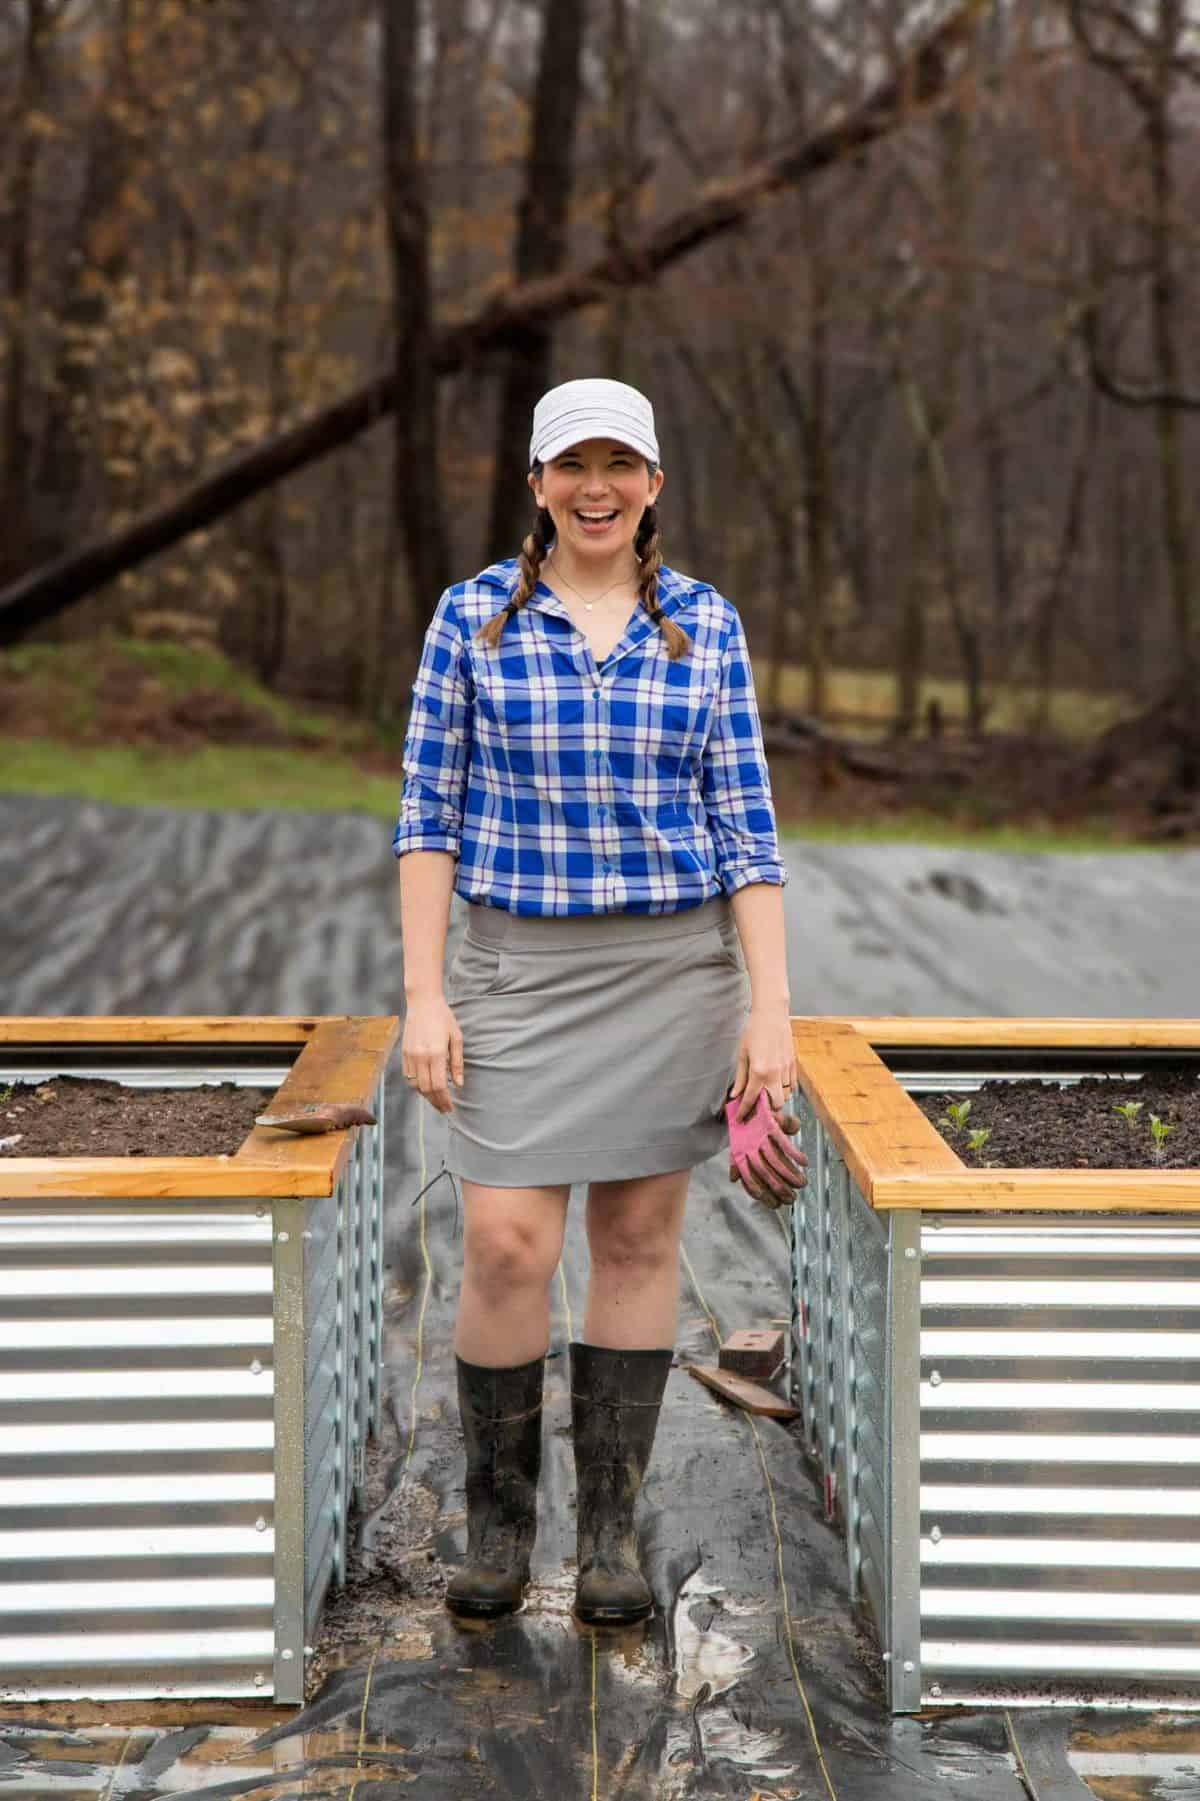 Woman standing between two raised beds, smiling